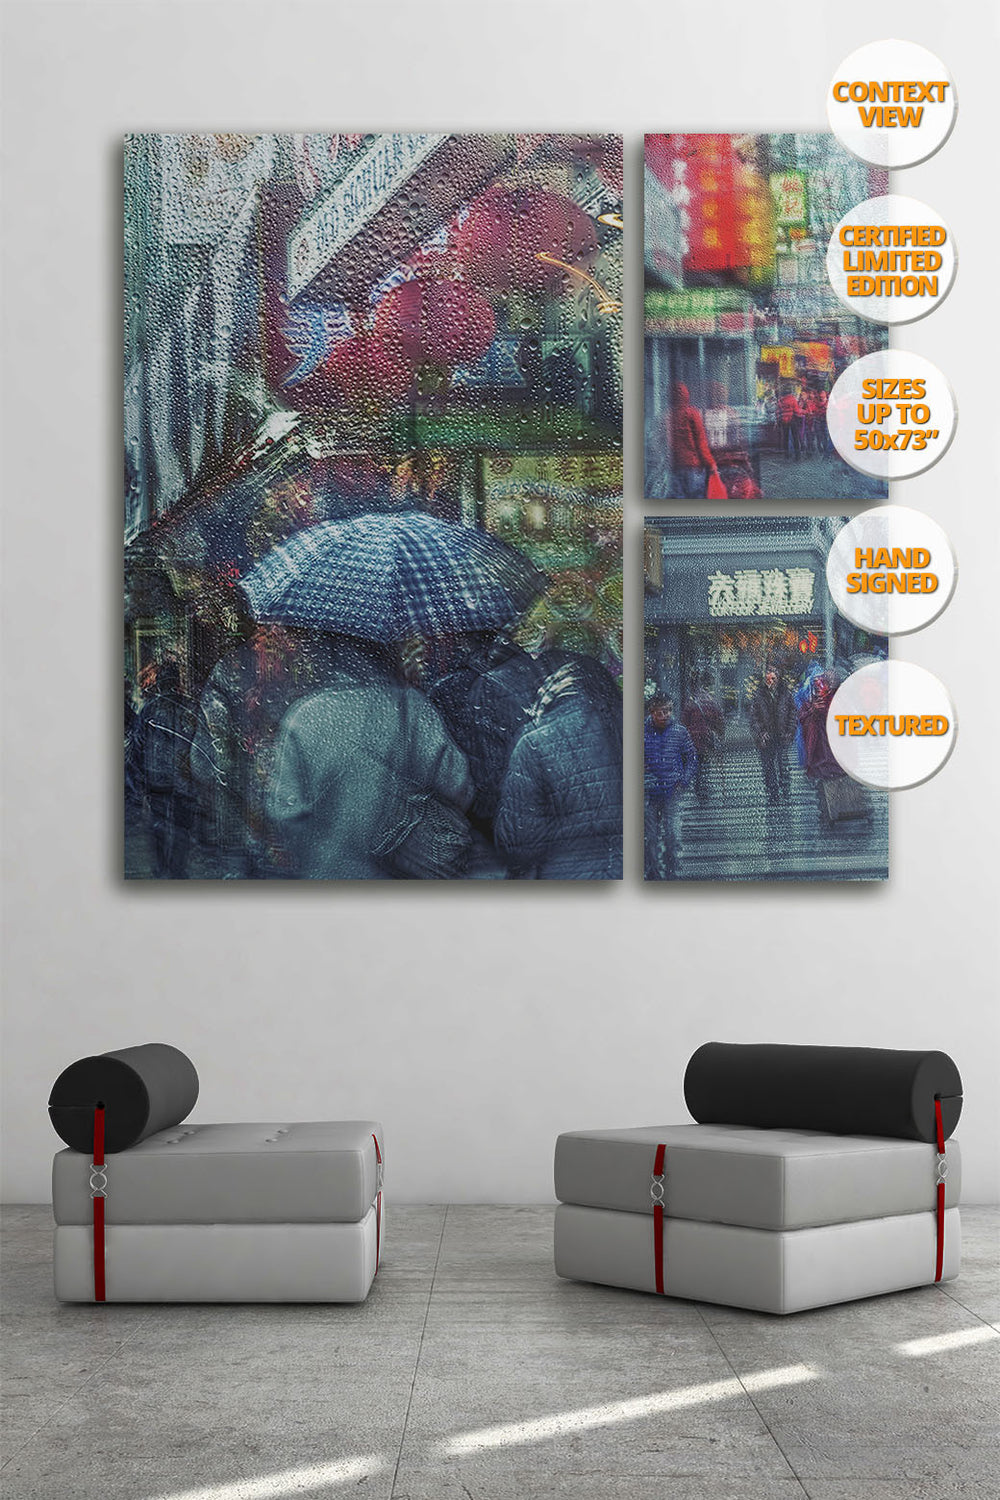 Rain in Chinatown, New York. [1/3] | New York Through the Rain Series. | Print hanged in meeting room.